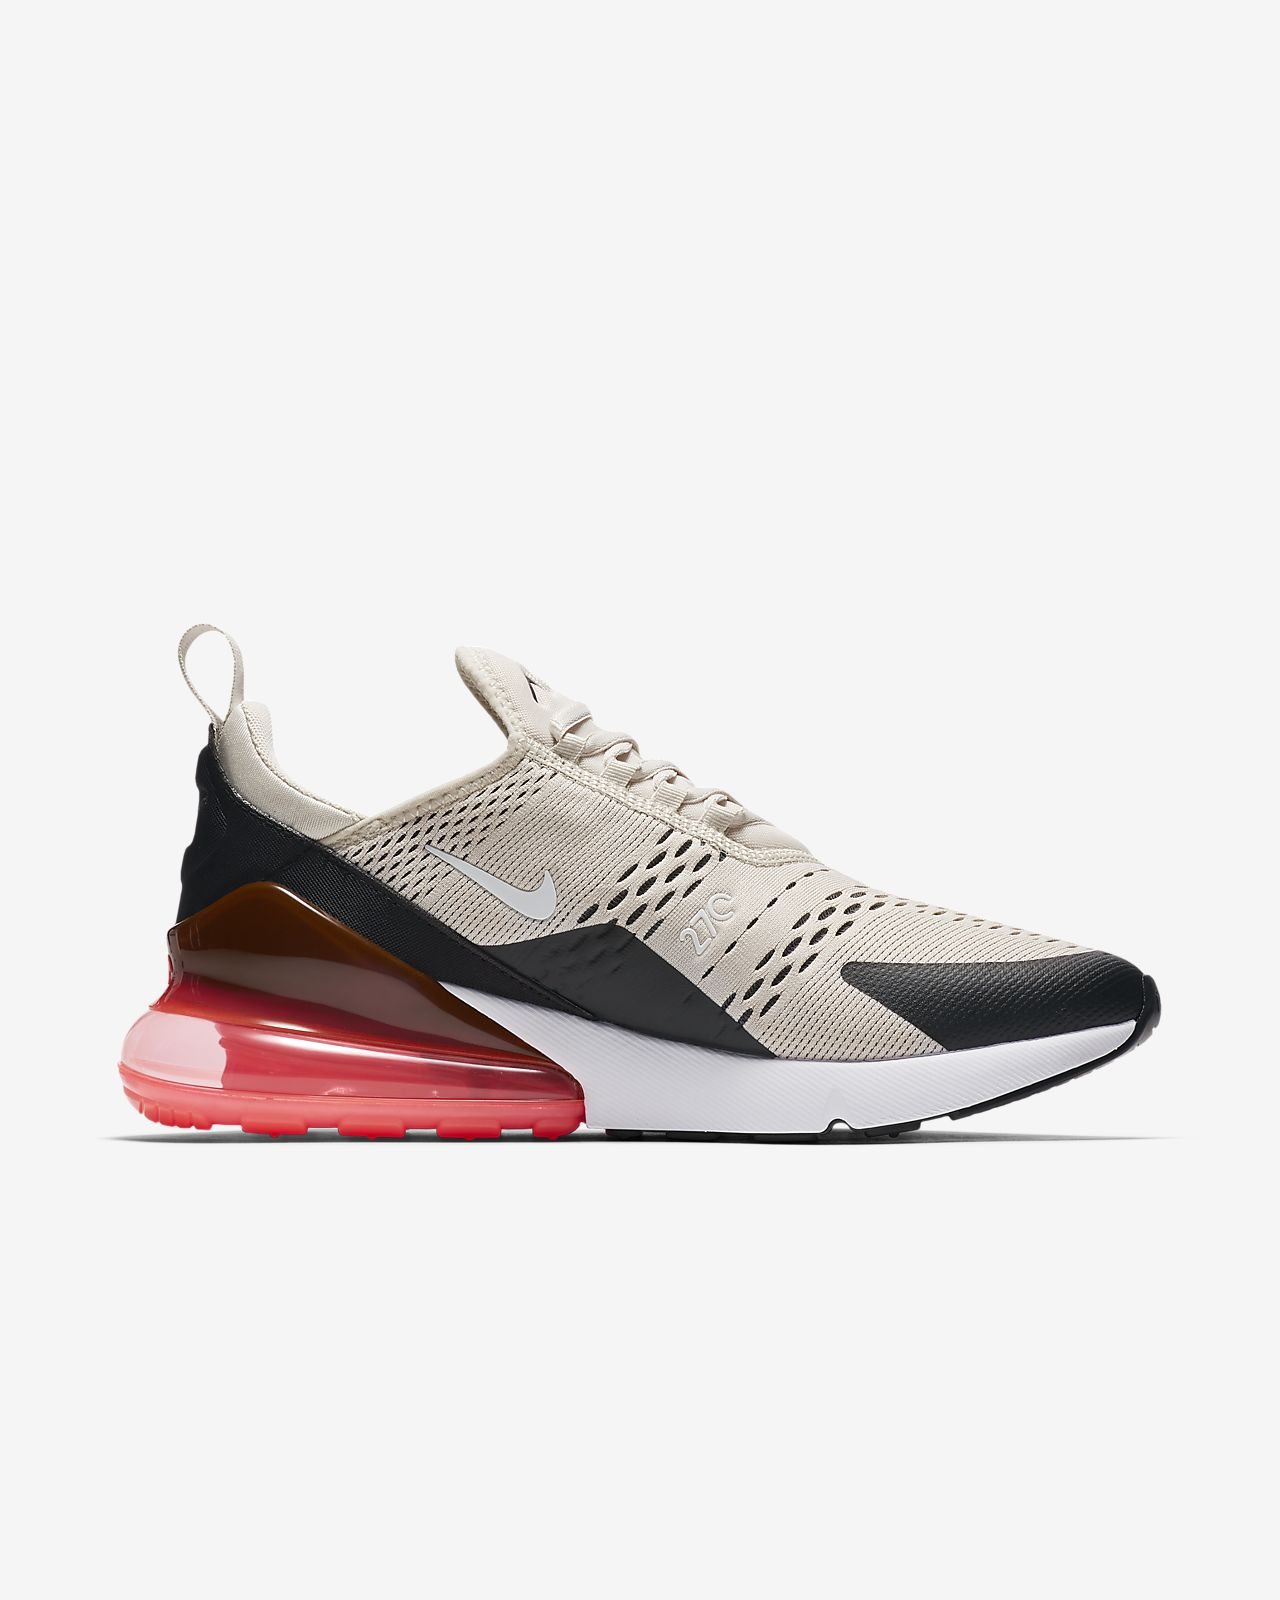 bc8177a4 Nike Air Max 270 Men's Shoe. Nike.com GB